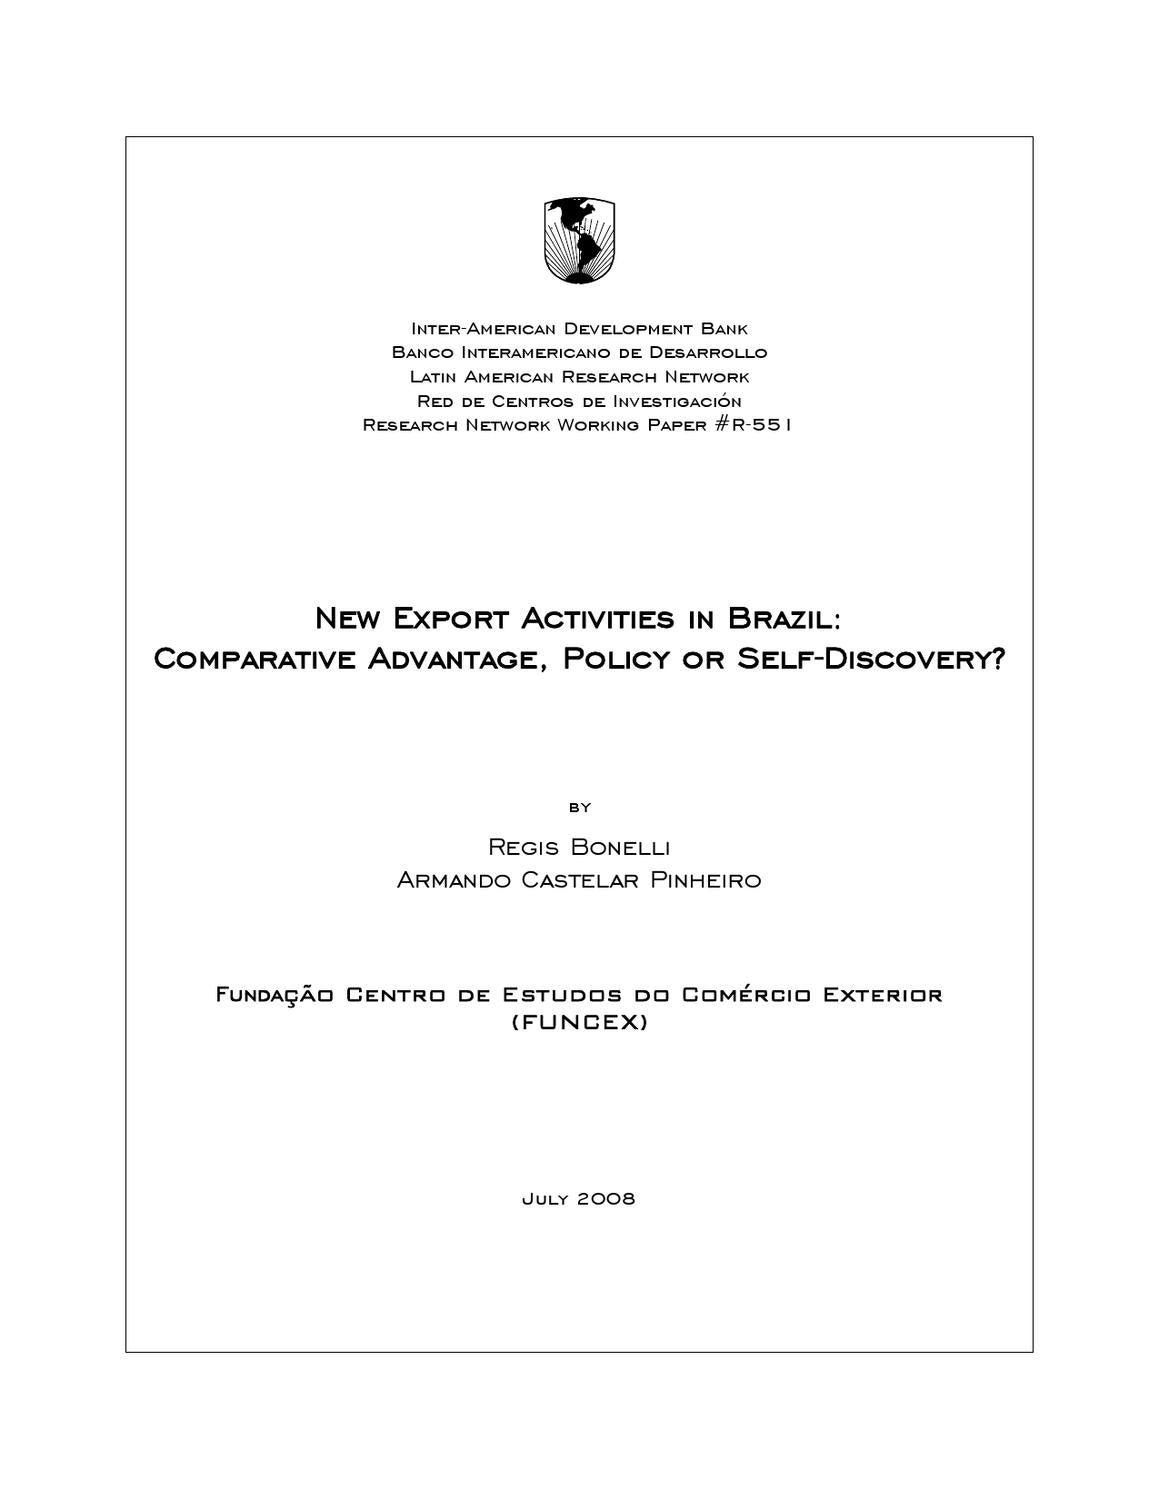 new export activities in brazil: comparative advantage, policy or